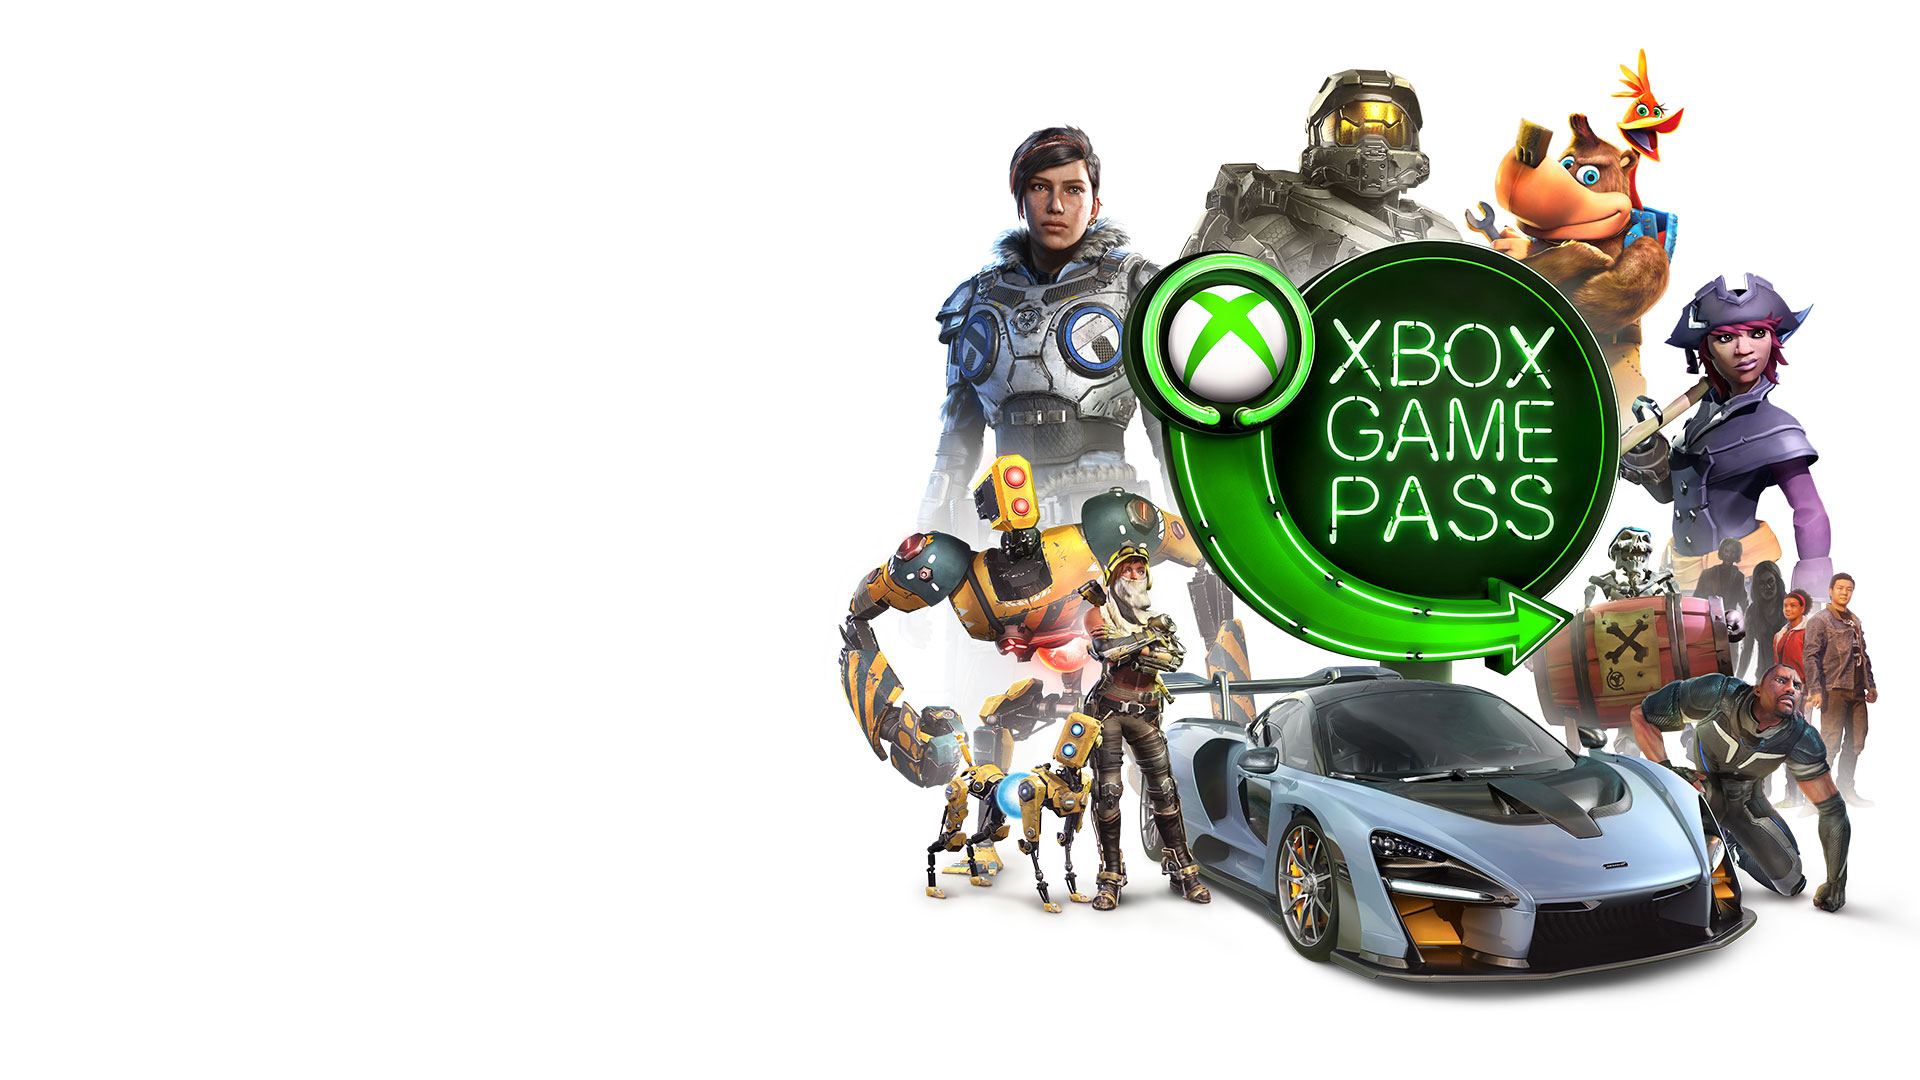 Logo di Xbox Game Pass circondato da personaggi di giochi Xbox come Master Chief, Banjo e Kazooie, Recore e pirati di Sea of Thieves